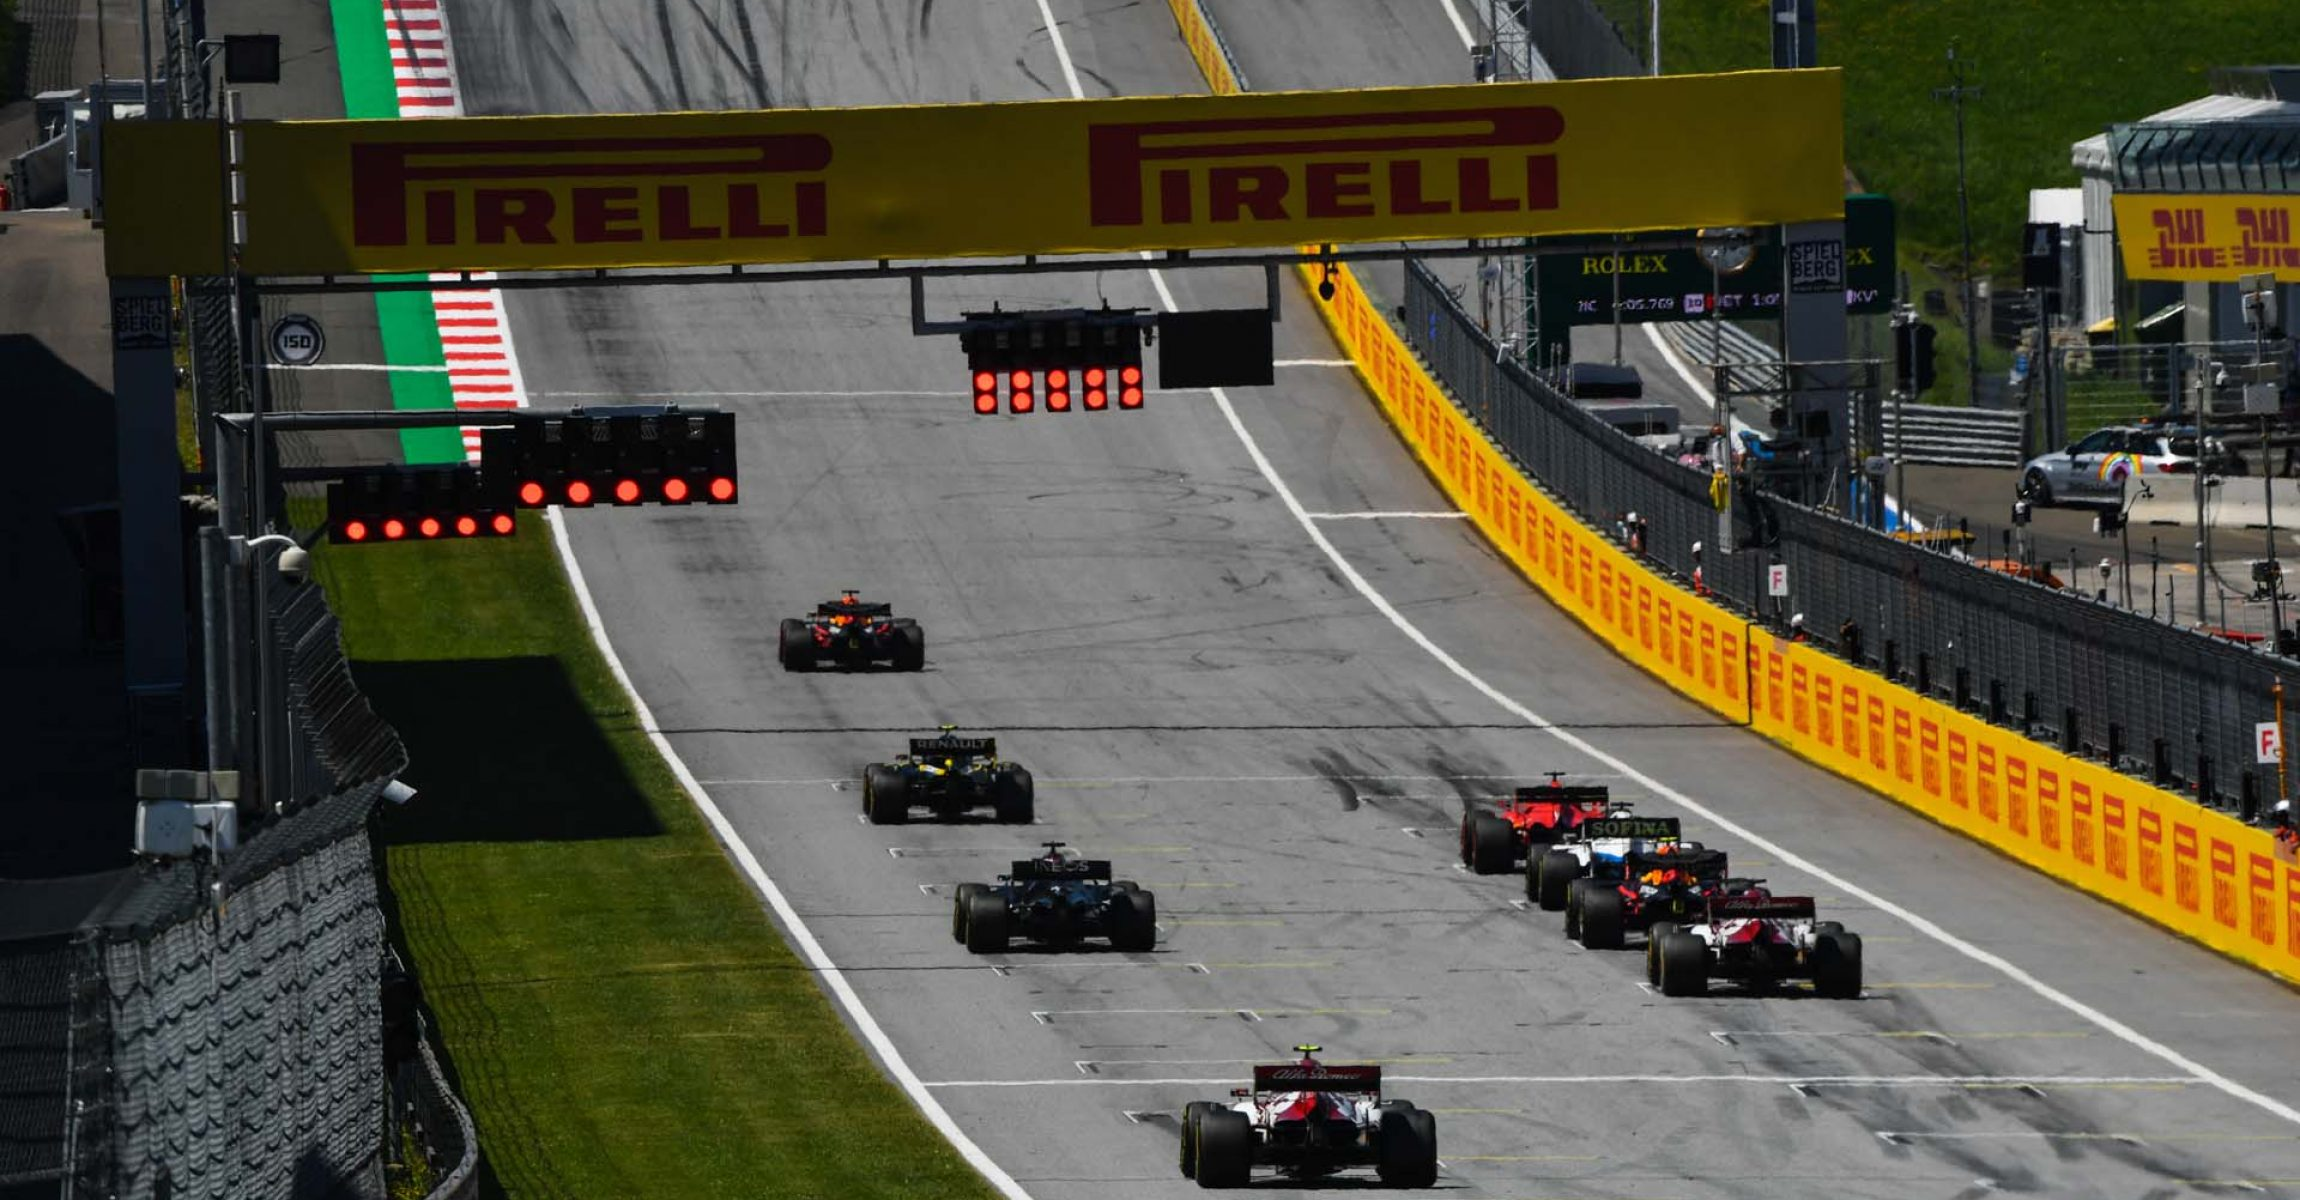 RED BULL RING, AUSTRIA - JULY 10: The drivers line up to practice their start procedures at the end of the session during the Styrian GP at Red Bull Ring on Friday July 10, 2020 in Spielberg, Austria. (Photo by Mark Sutton / LAT Images)